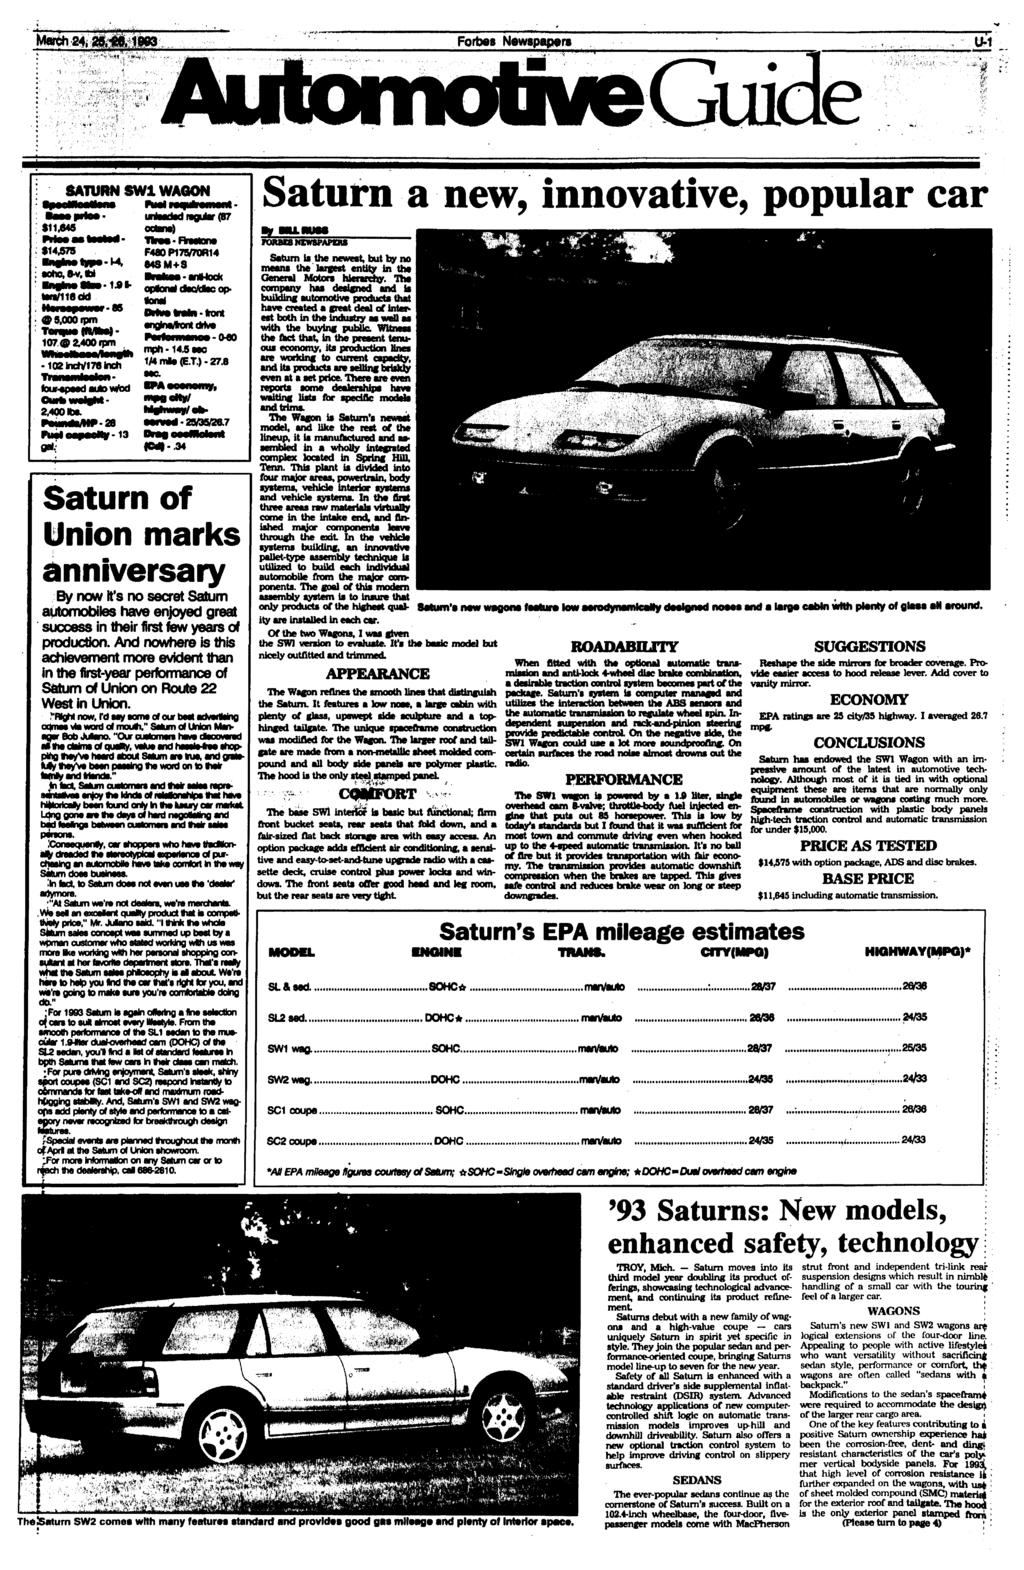 Thefestfield Record Pdf Air Conditioning Four Season System Wiring Diagram C K Models For 1979 Gmc Light Duty Truck Series 10 35 Forbes Newspapers U 1 Saturn Sw1 Wagon A New Innovative Popular Car